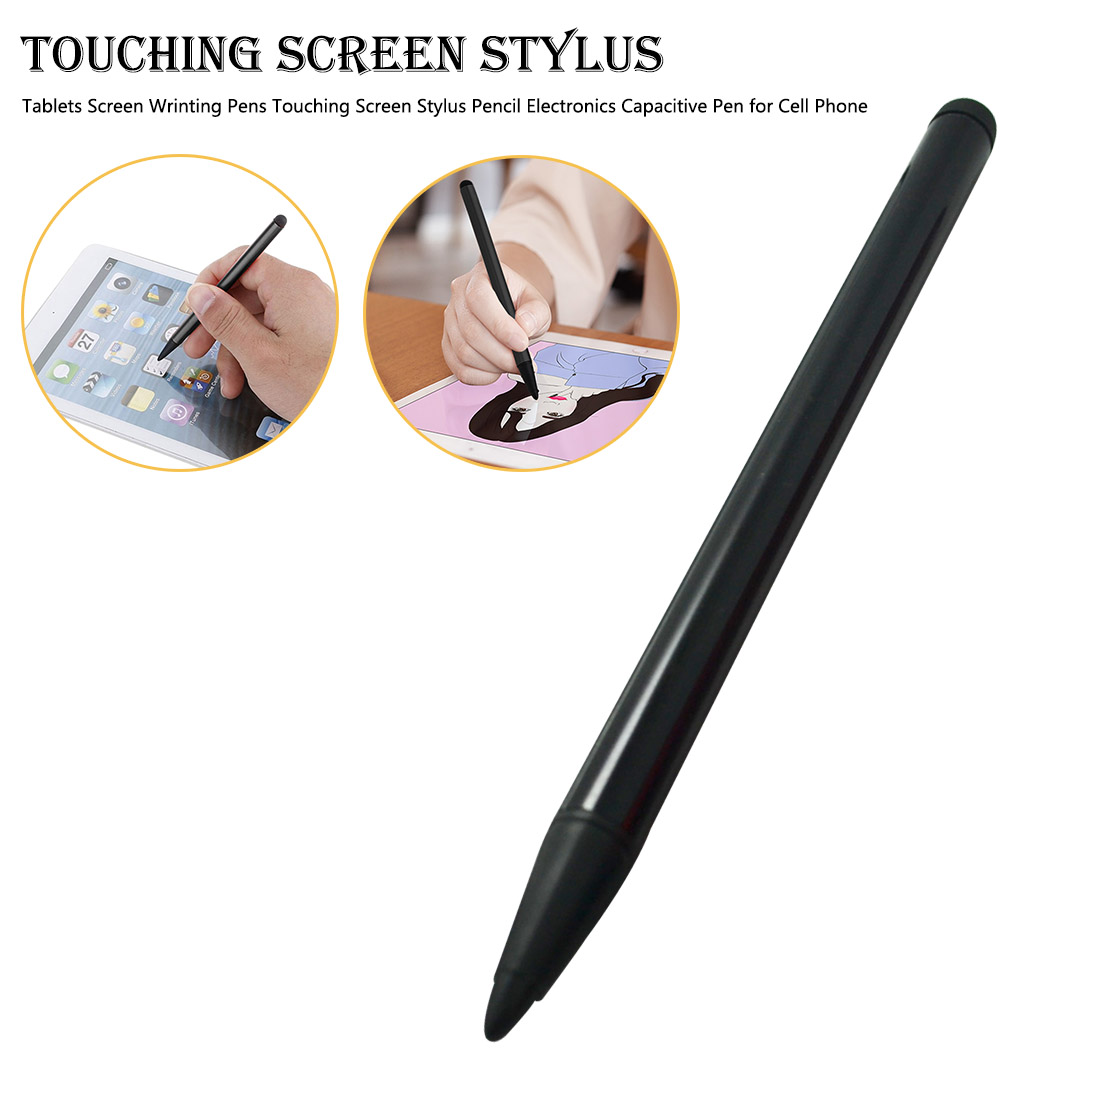 Tablets Screen Pen Support Capacitance Screen & Resistance Screen Stylus Pen For Smartphone Tablet Games Console